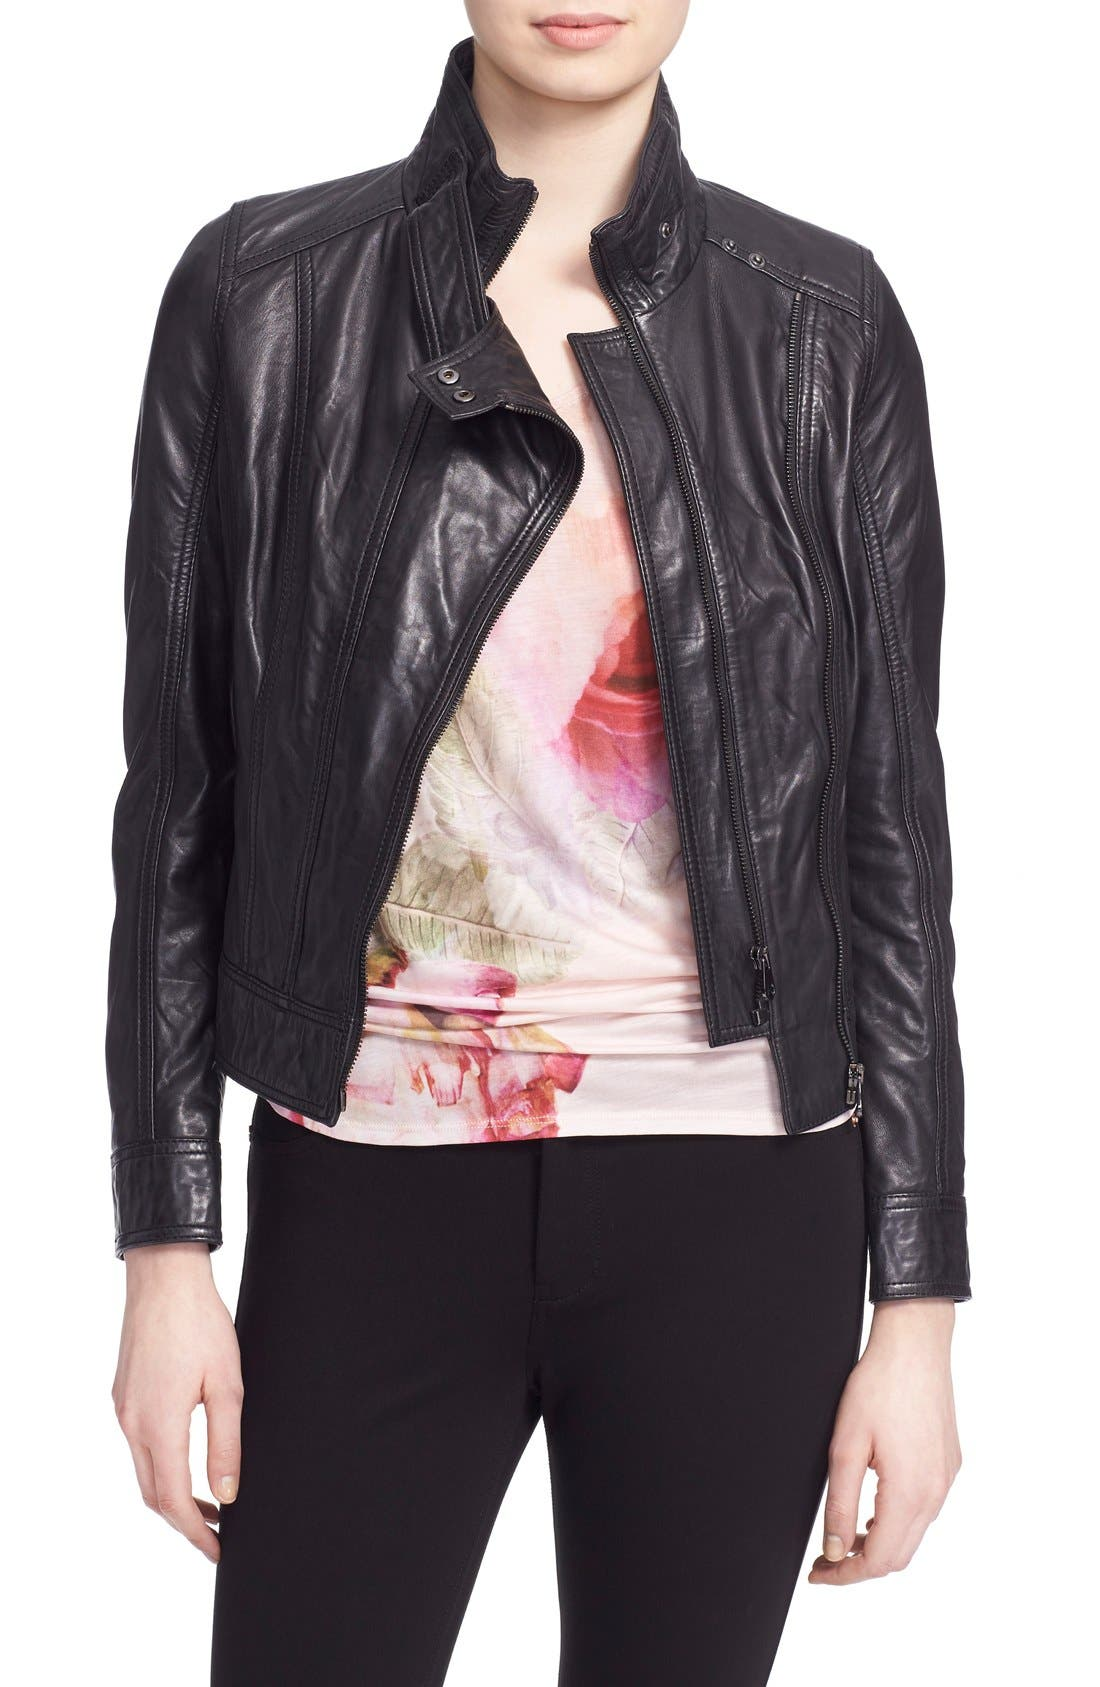 TED BAKER LONDON, 'Roark' Stand Collar Leather Jacket, Main thumbnail 1, color, 001